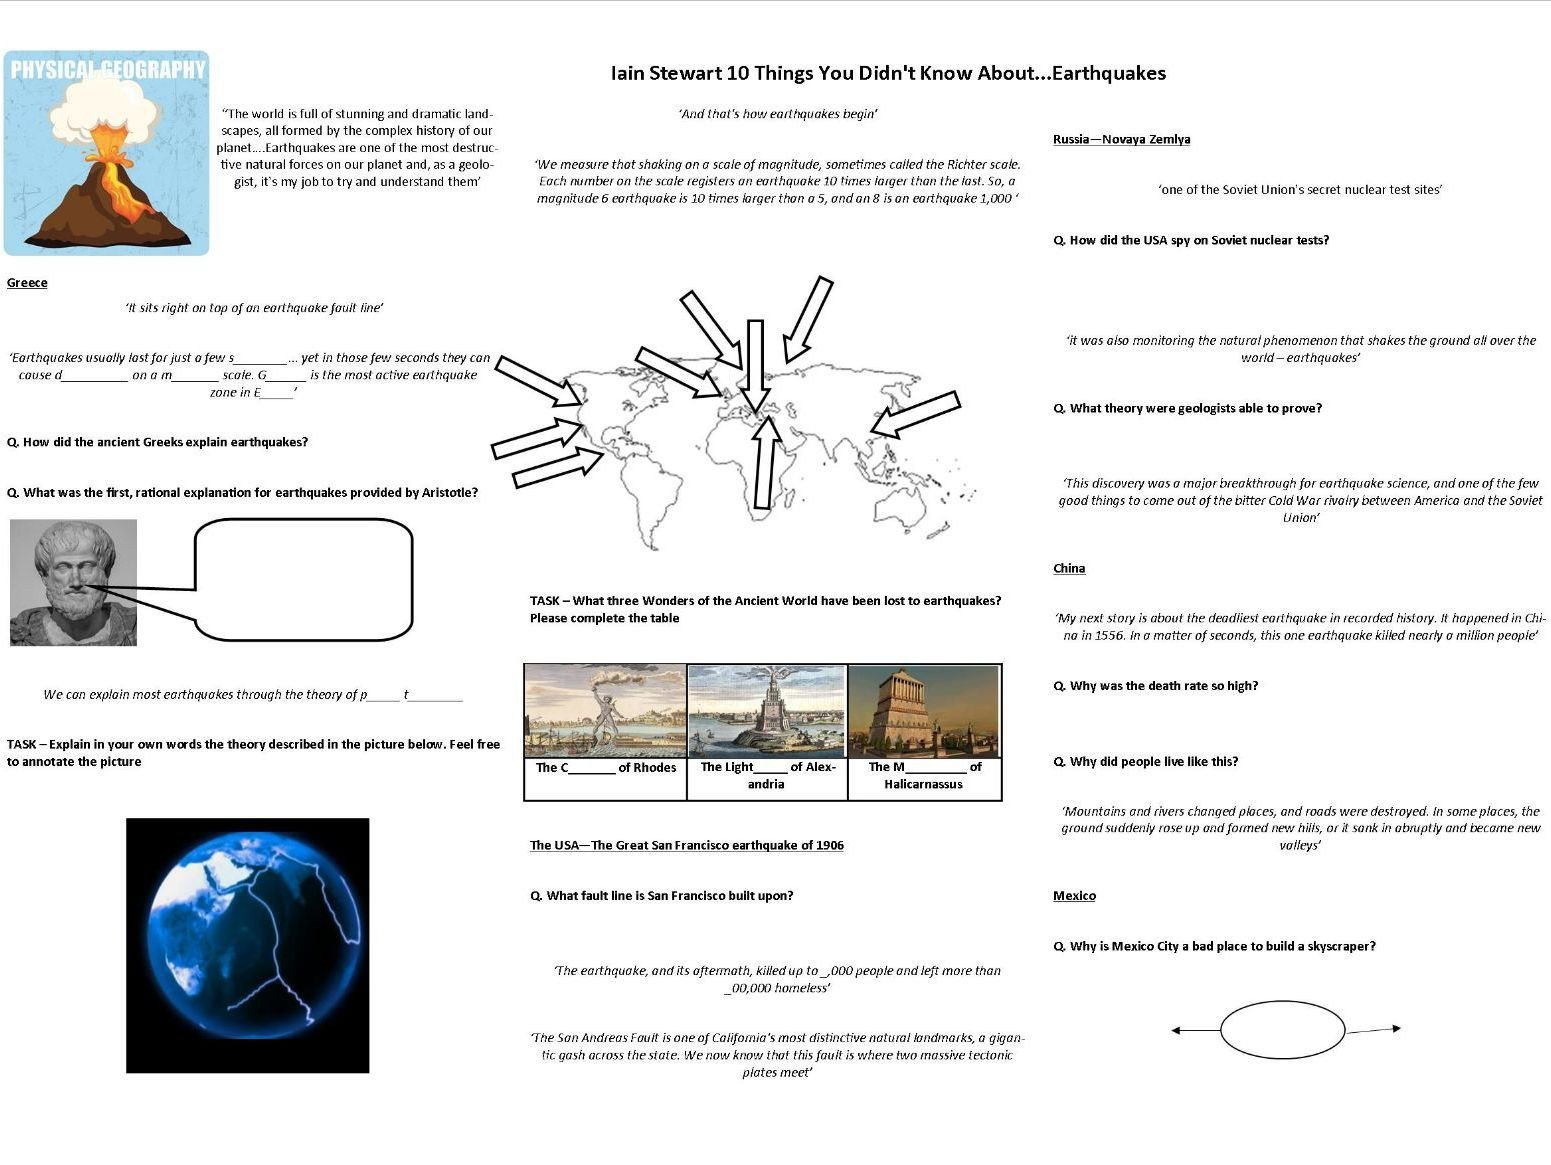 earthquakes 10 things you didn t know about worksheet to support the bbc doc with iain stewart